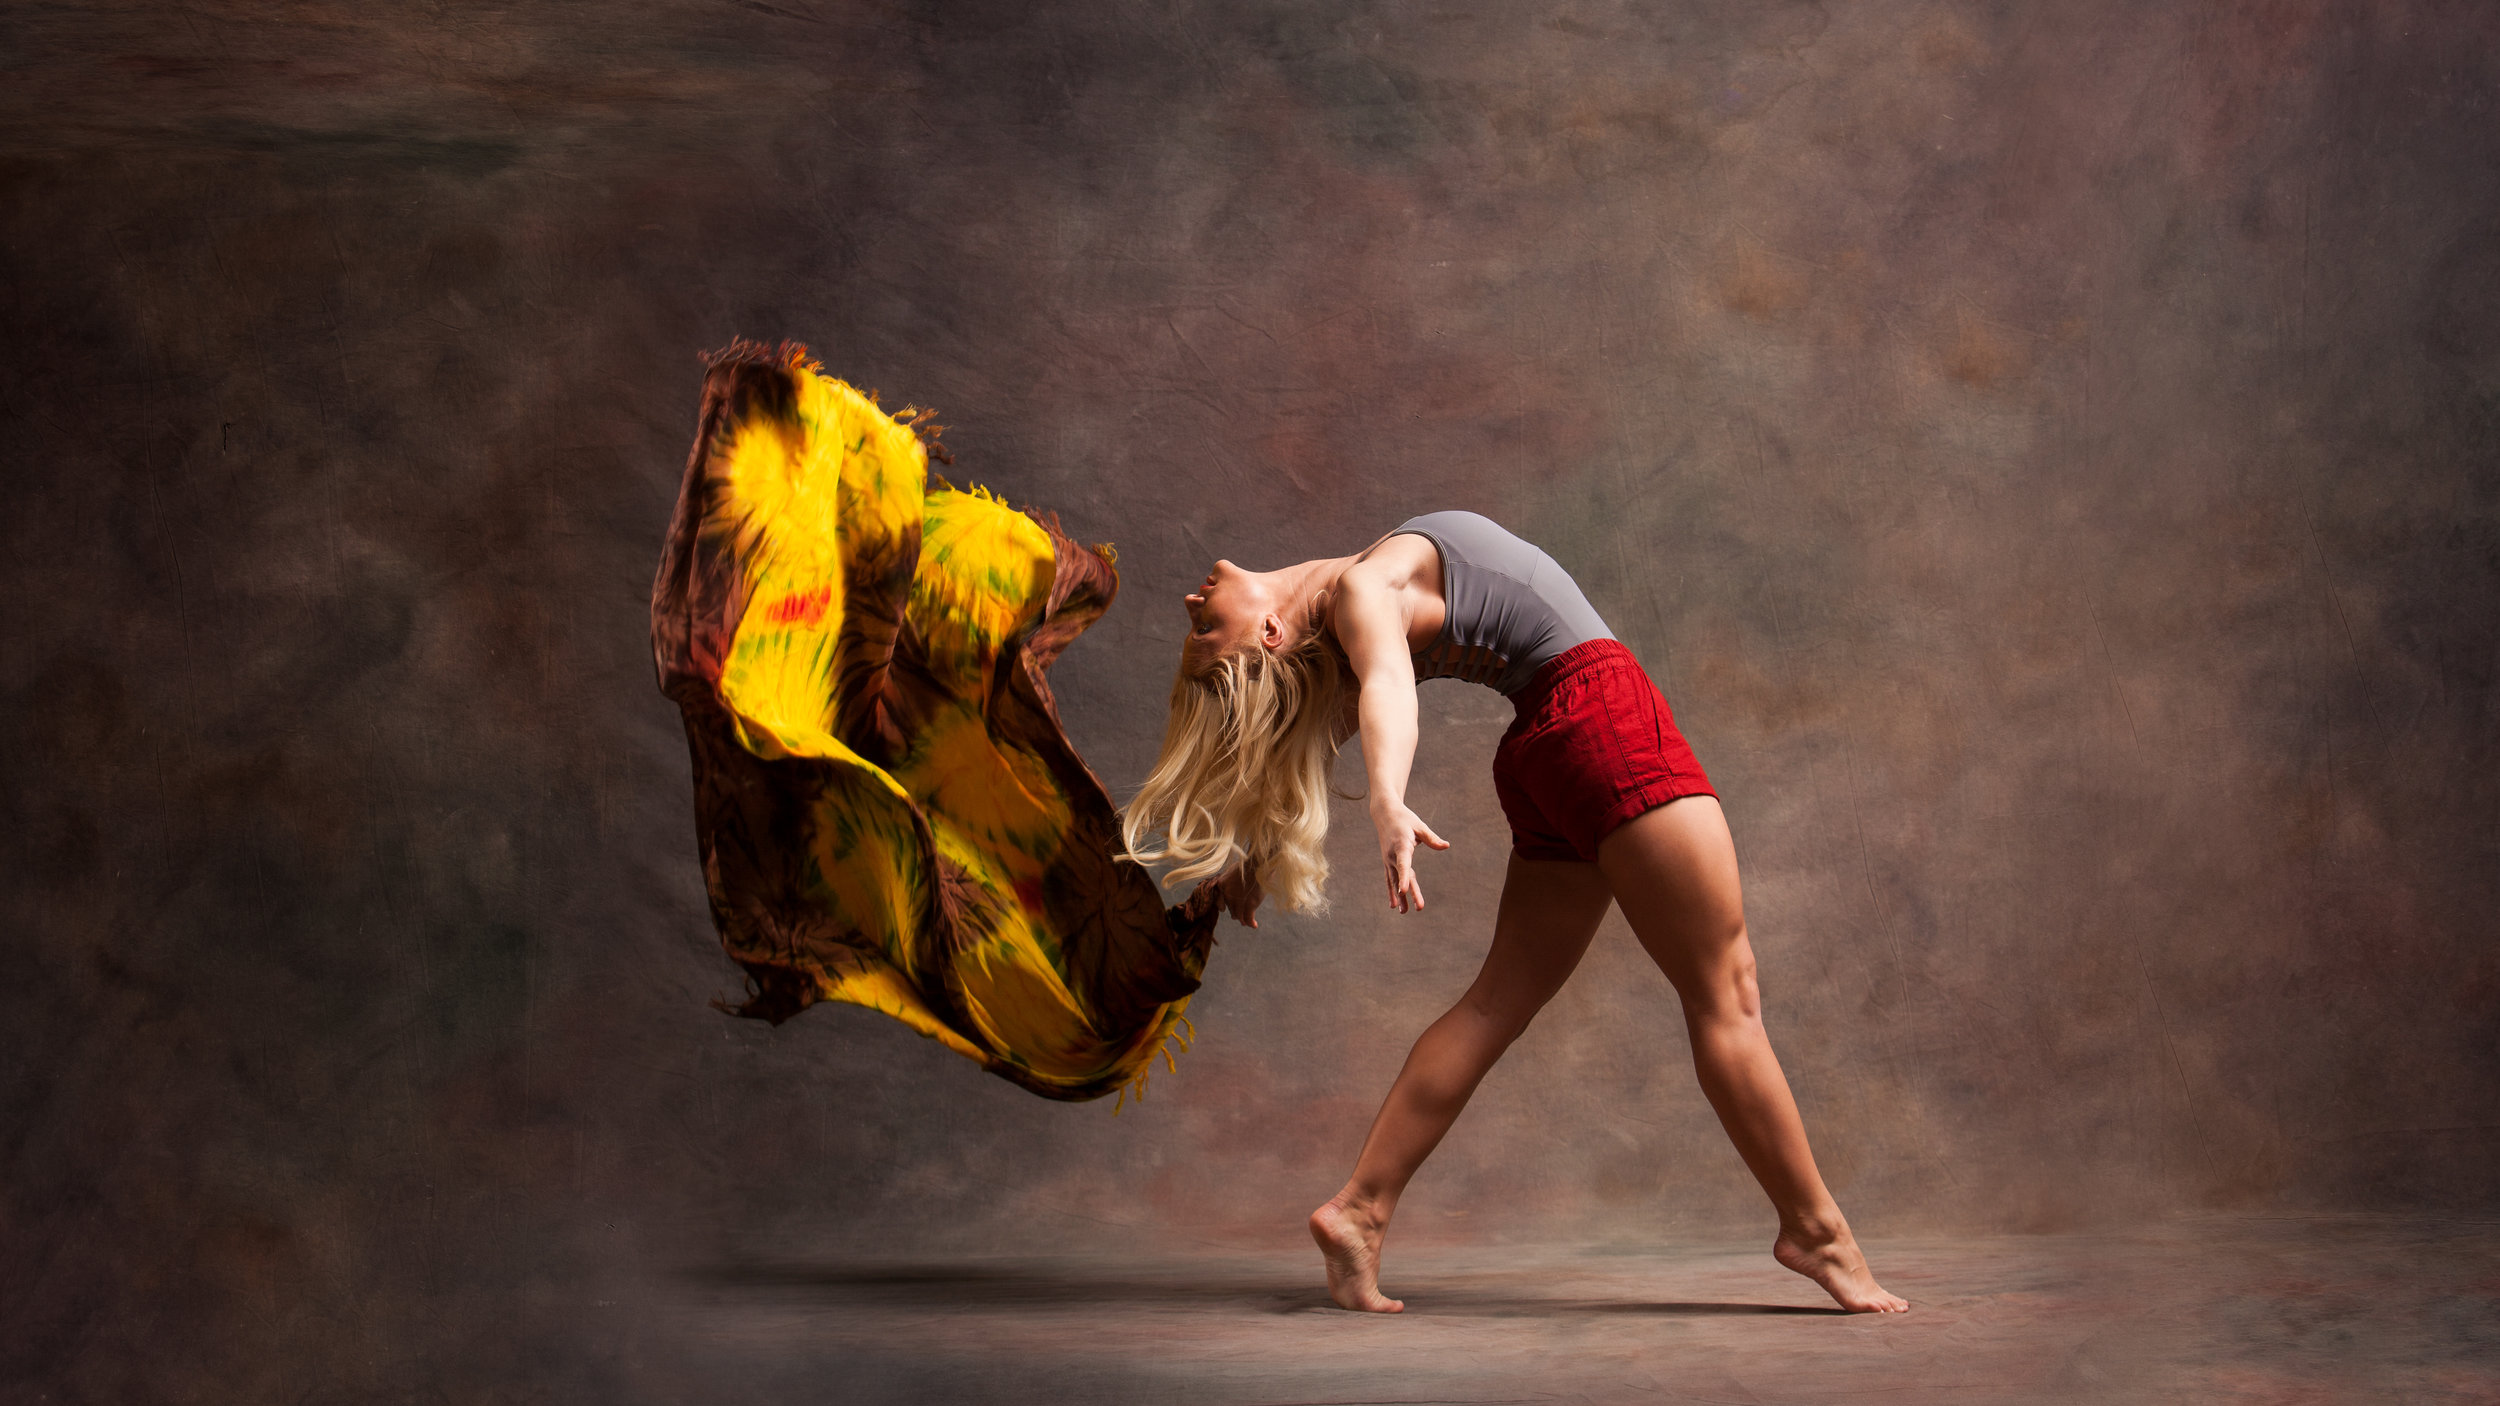 the power and grace of dance